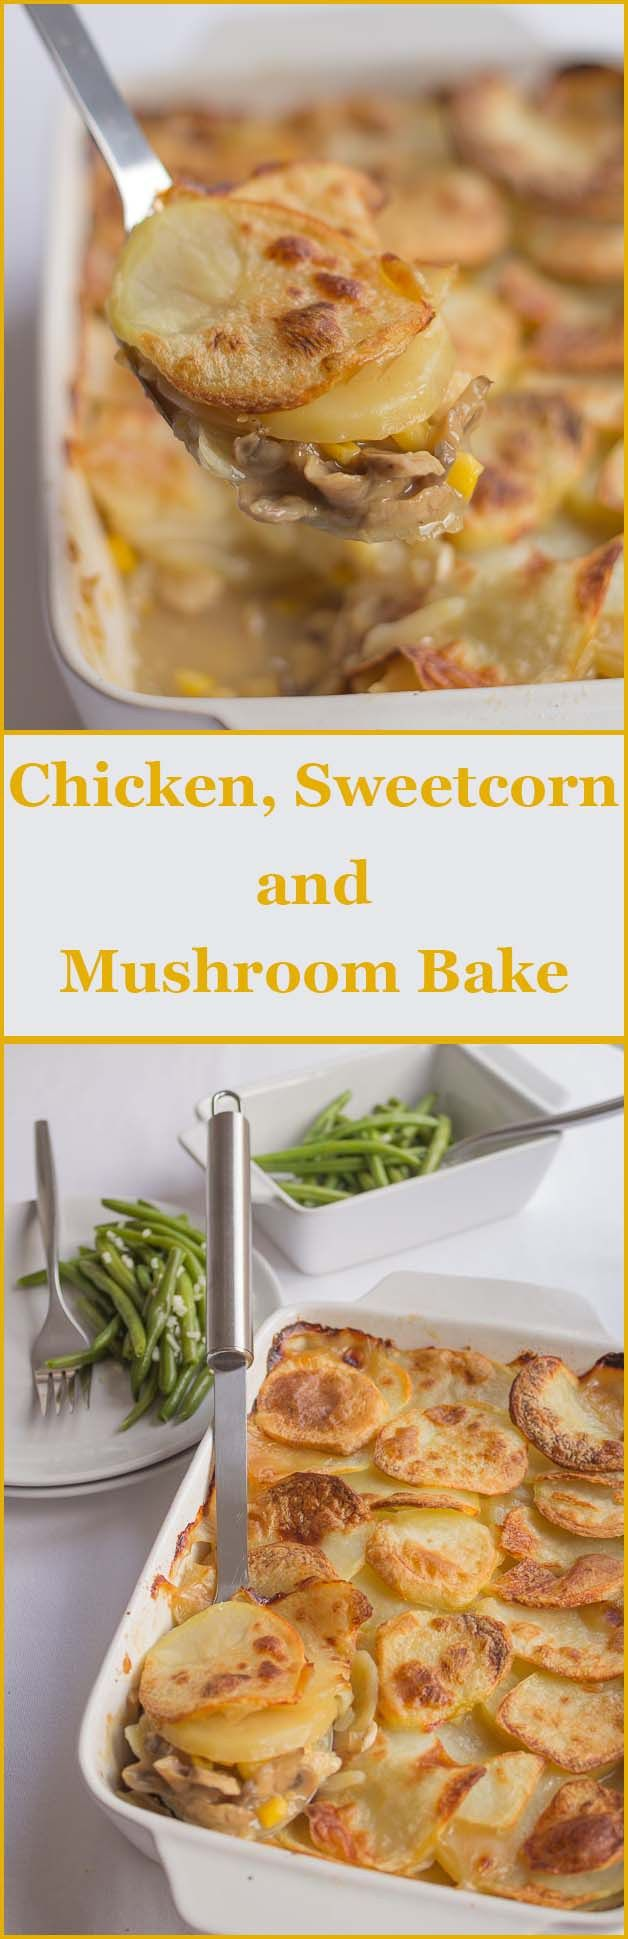 A nice, easy and delicious low cost family chicken sweetcorn and mushroom bake for when time is short.